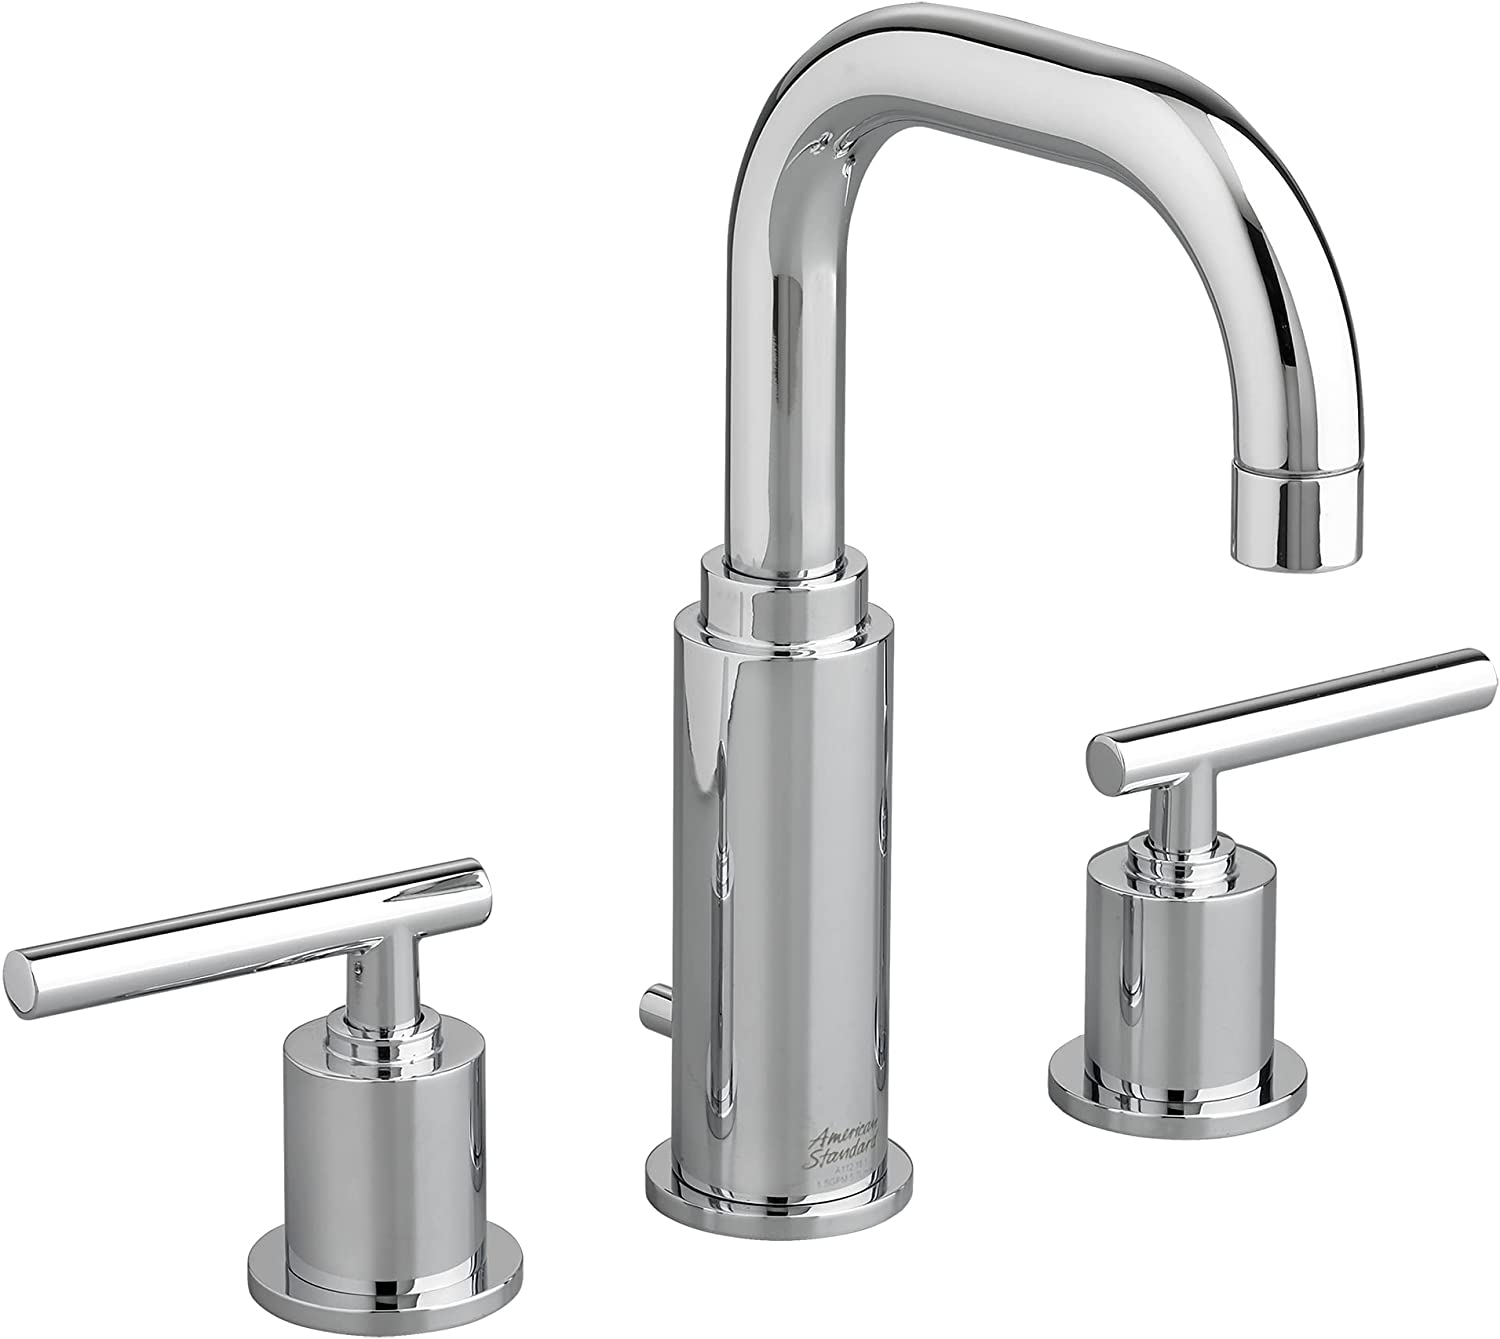 Amazon Com American Standard 2064831 002 Serin Widespread High Arc Bathroom Sink Faucet With Metal Pop Up Drain Polished Chrome Everything Else